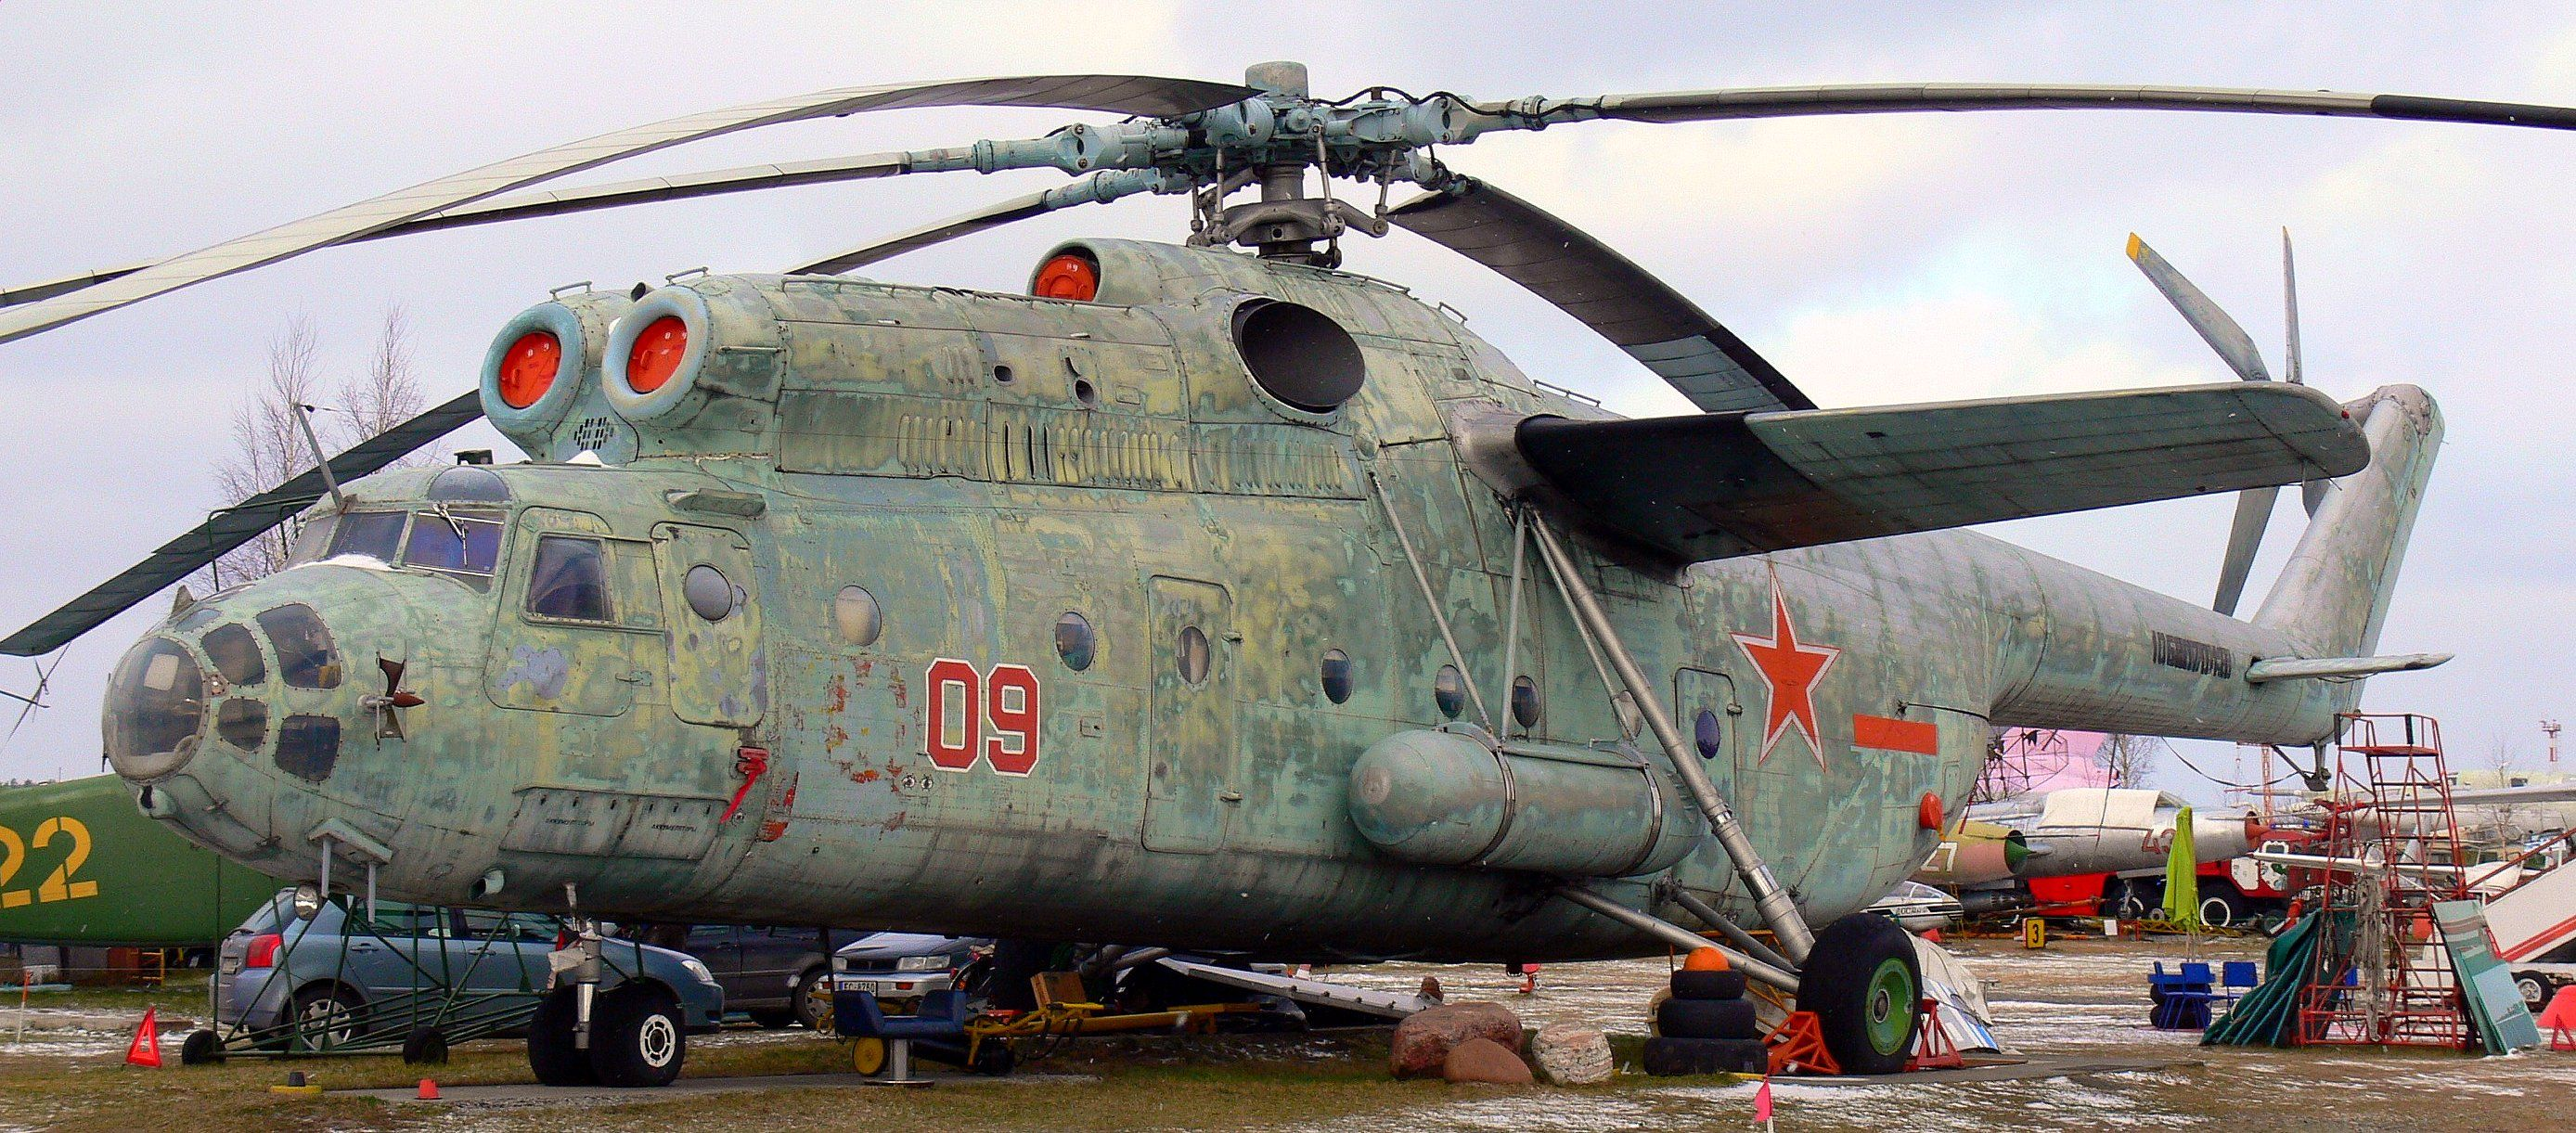 helicopters mi-24 military transport soviet HD wallpaper